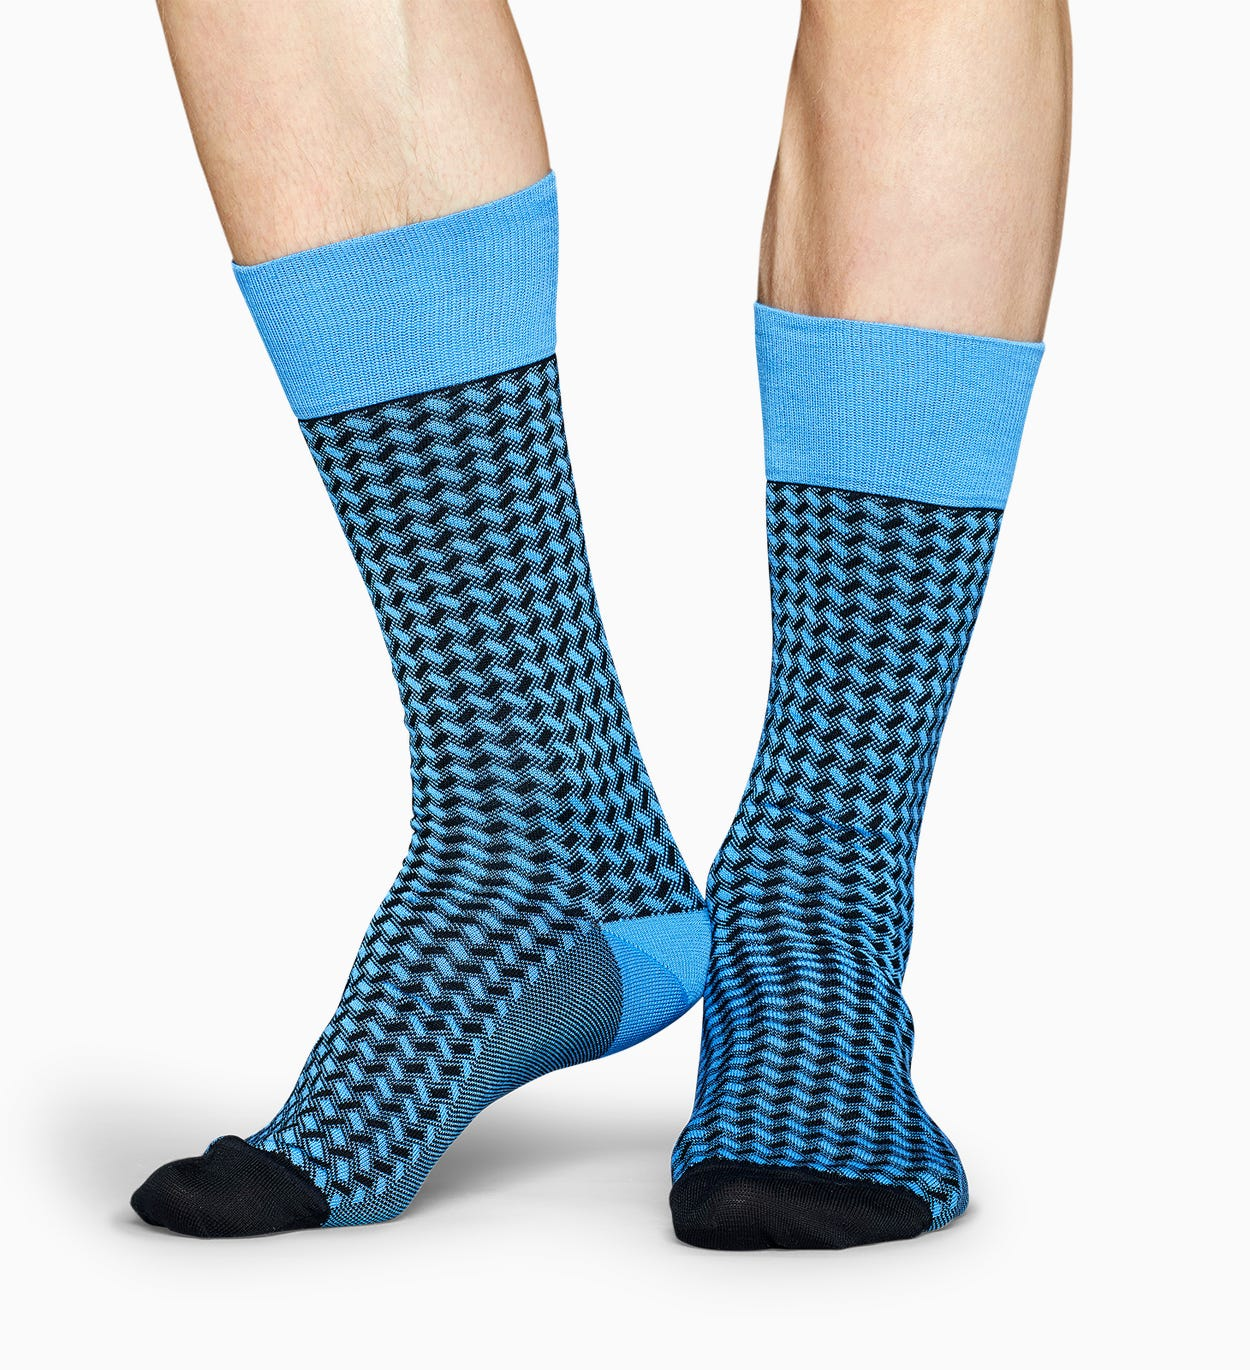 블루 드레스 양말: Basket Weave - Dressed | Happy Socks